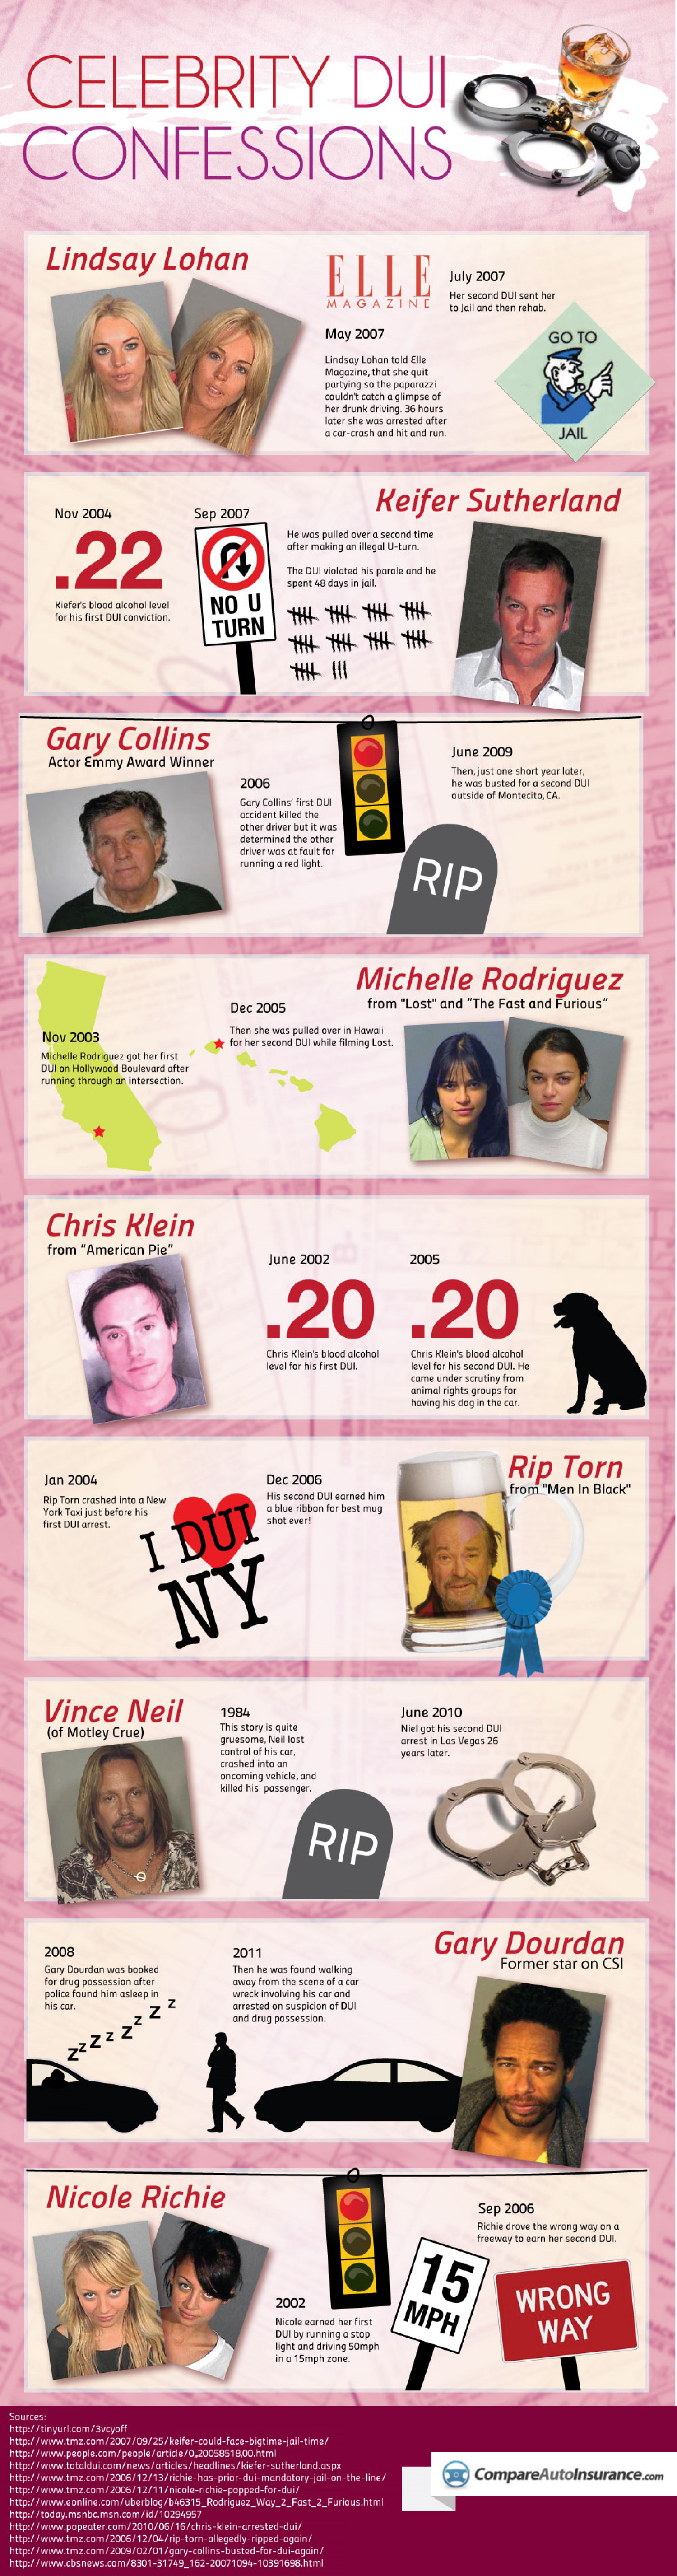 Celebrity DUI Confessions Infographic